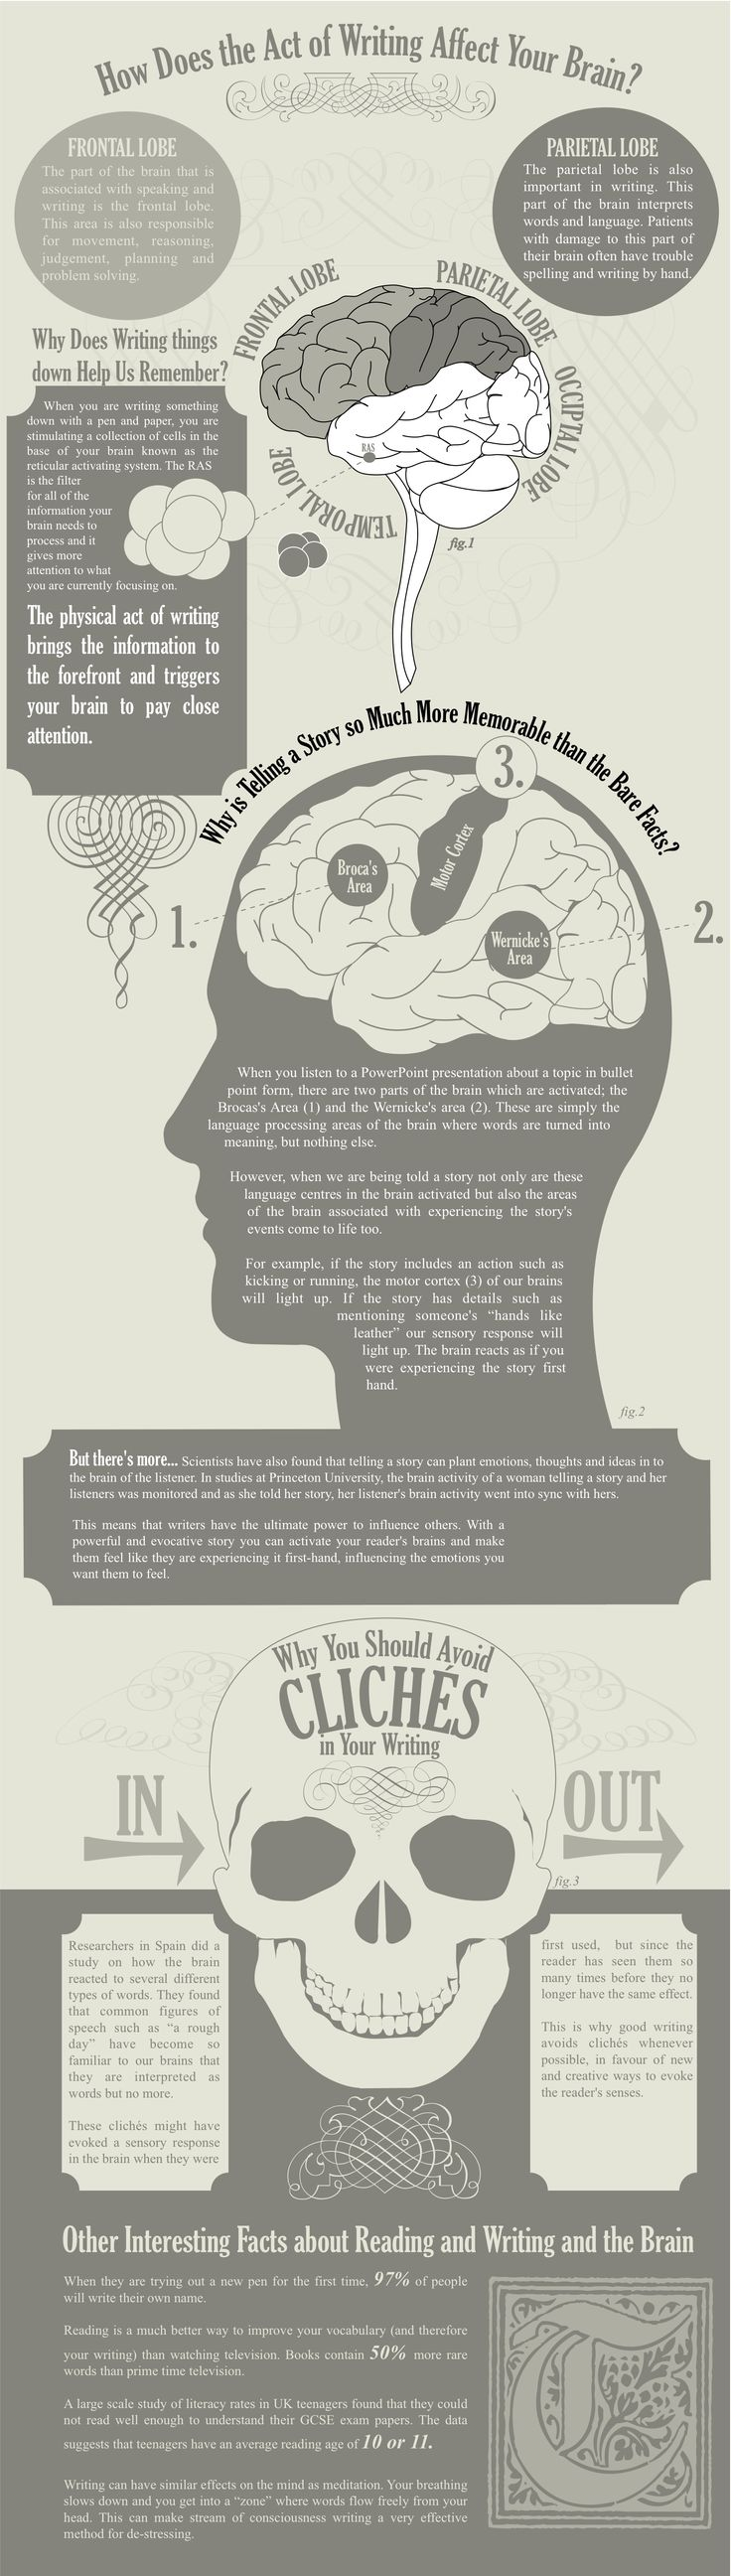 Amazing Facts on Writing and How it Affects Our Brain [Infographic] - An Infographic from BestInfographics.co